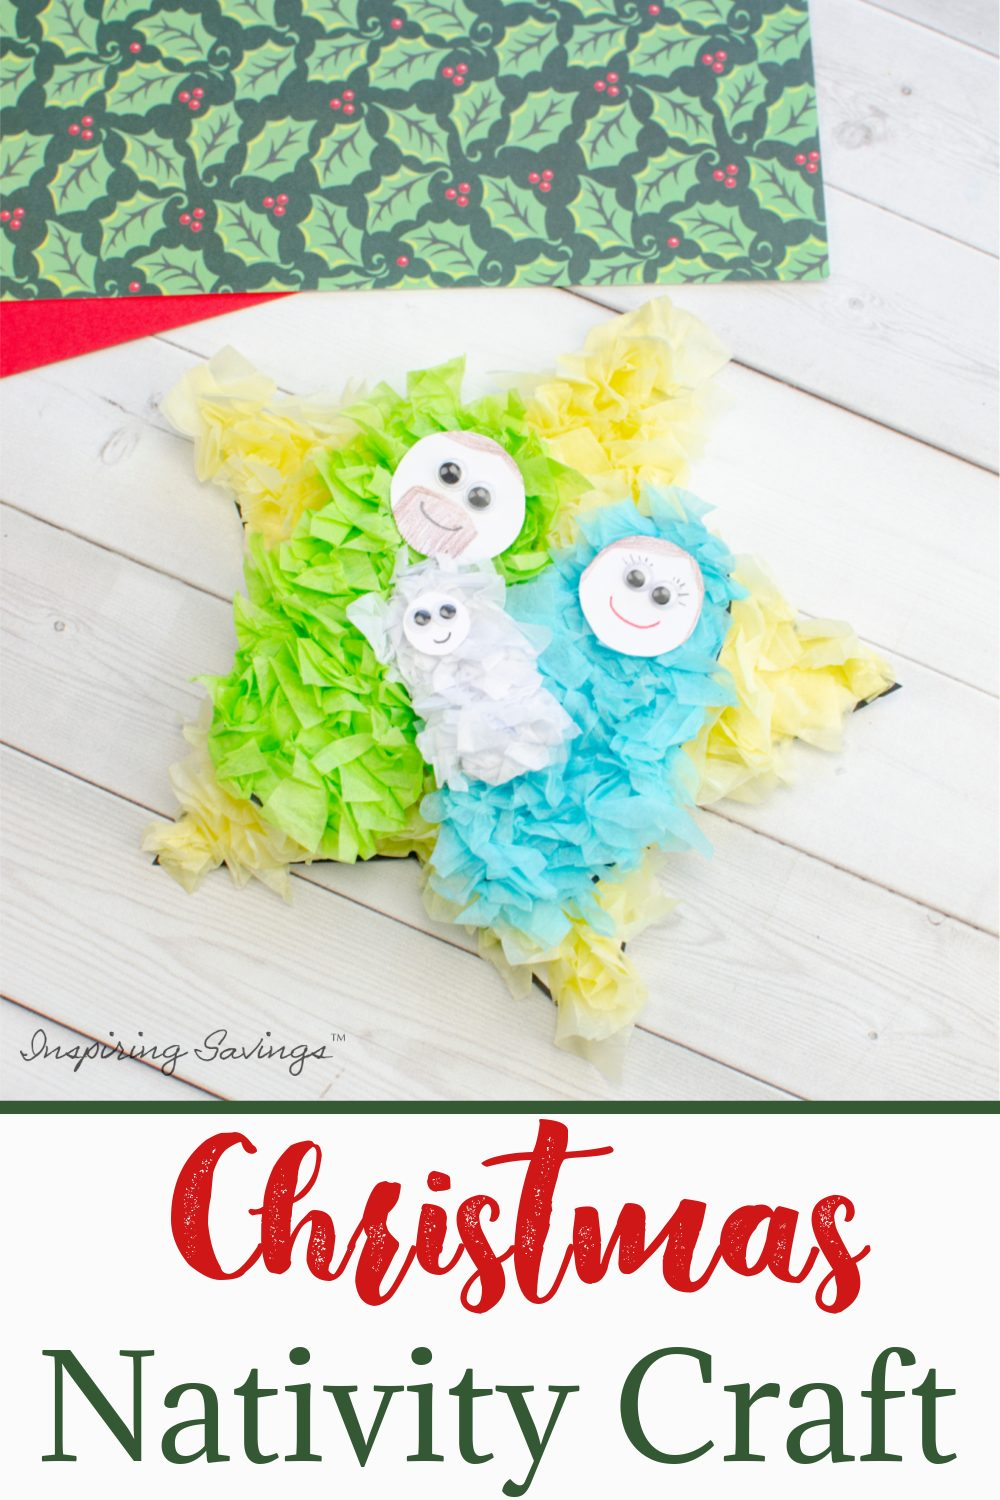 Christmas Nativity Scene Craft